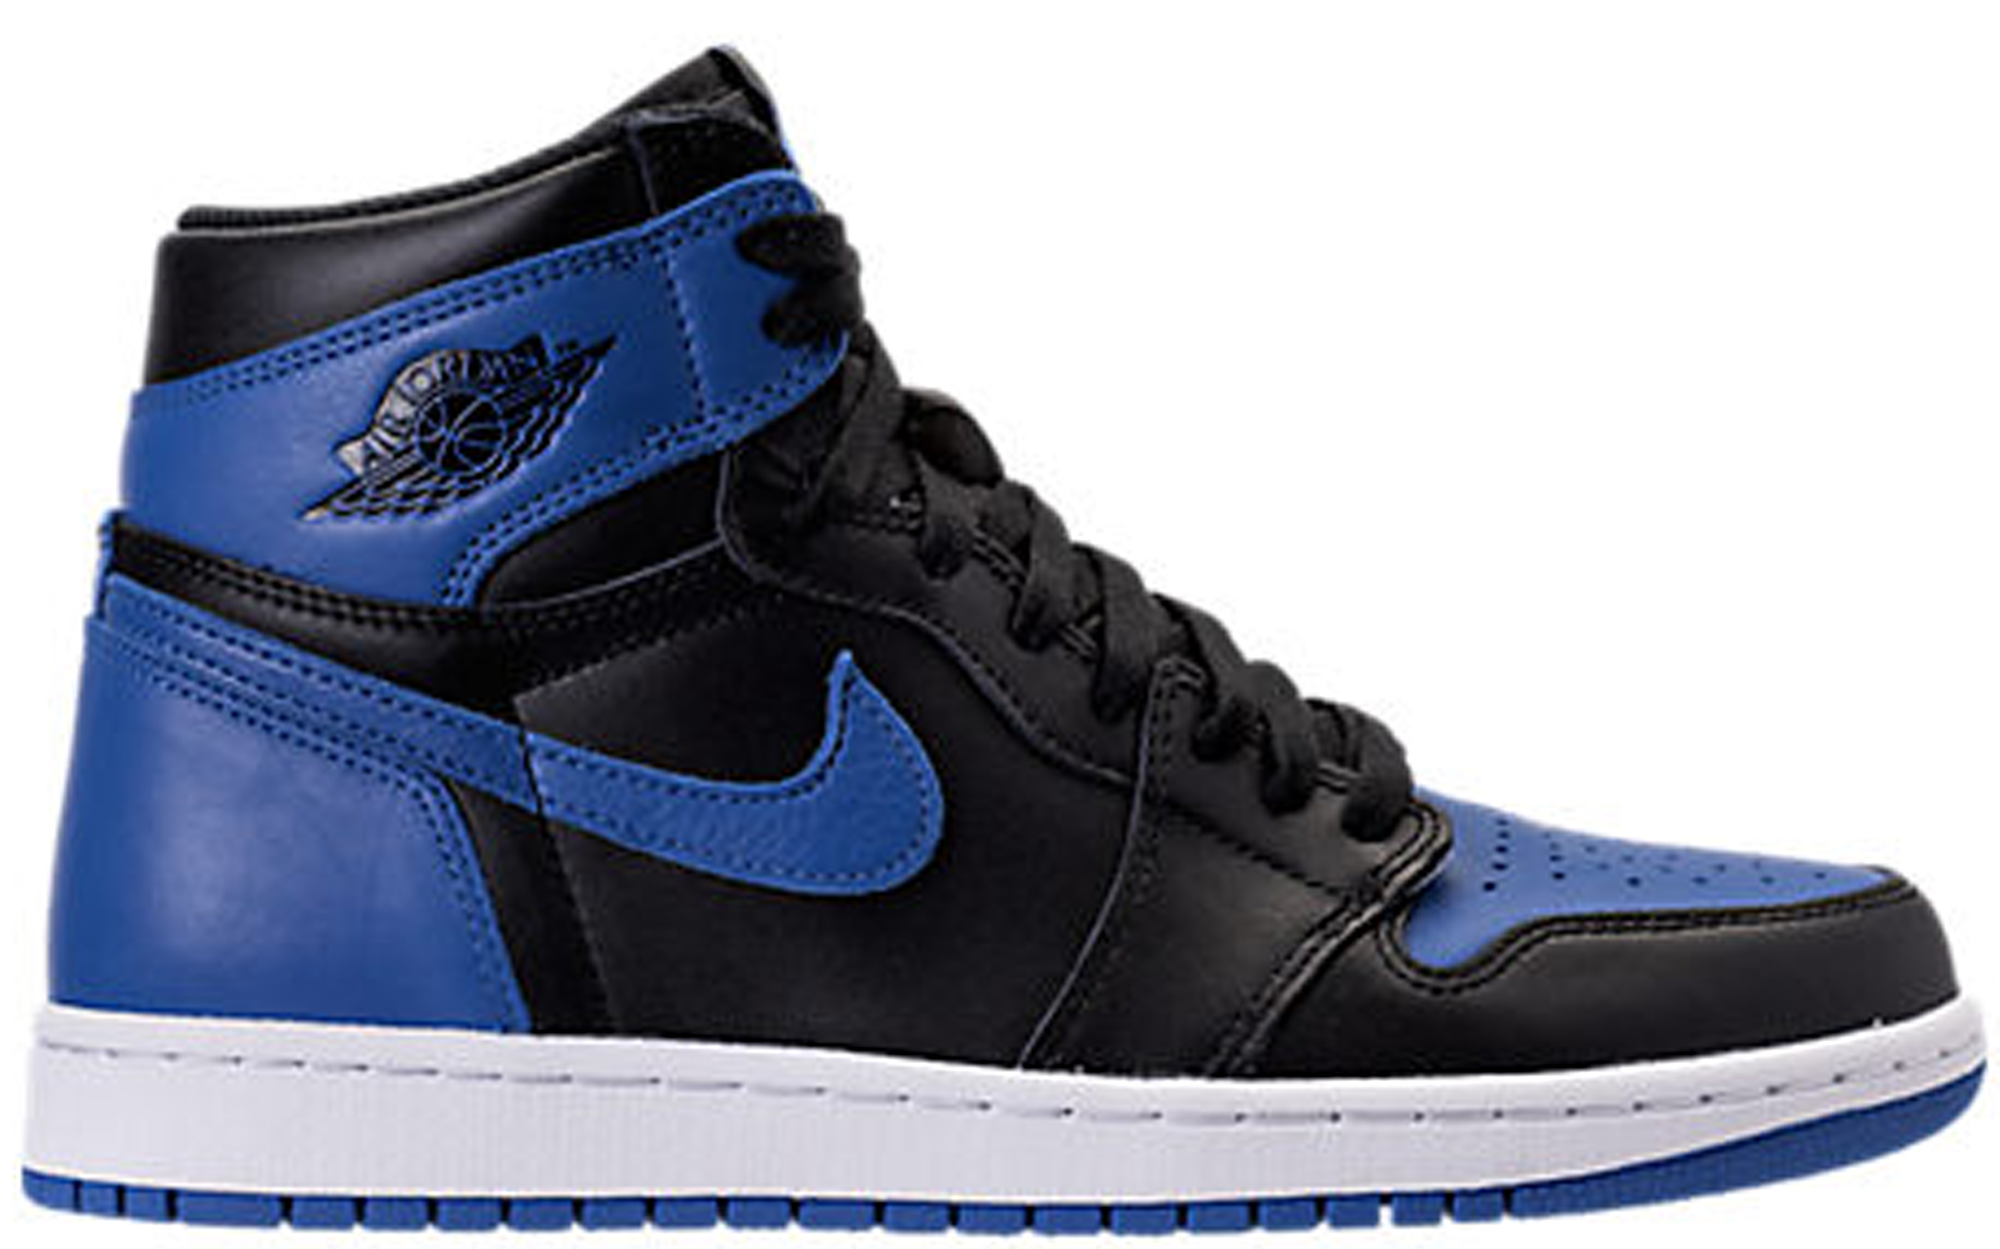 c473dfaf Jordan 1 Retro Royal (2017) | Fashion | Jordans, Air jordans, Jordan 1